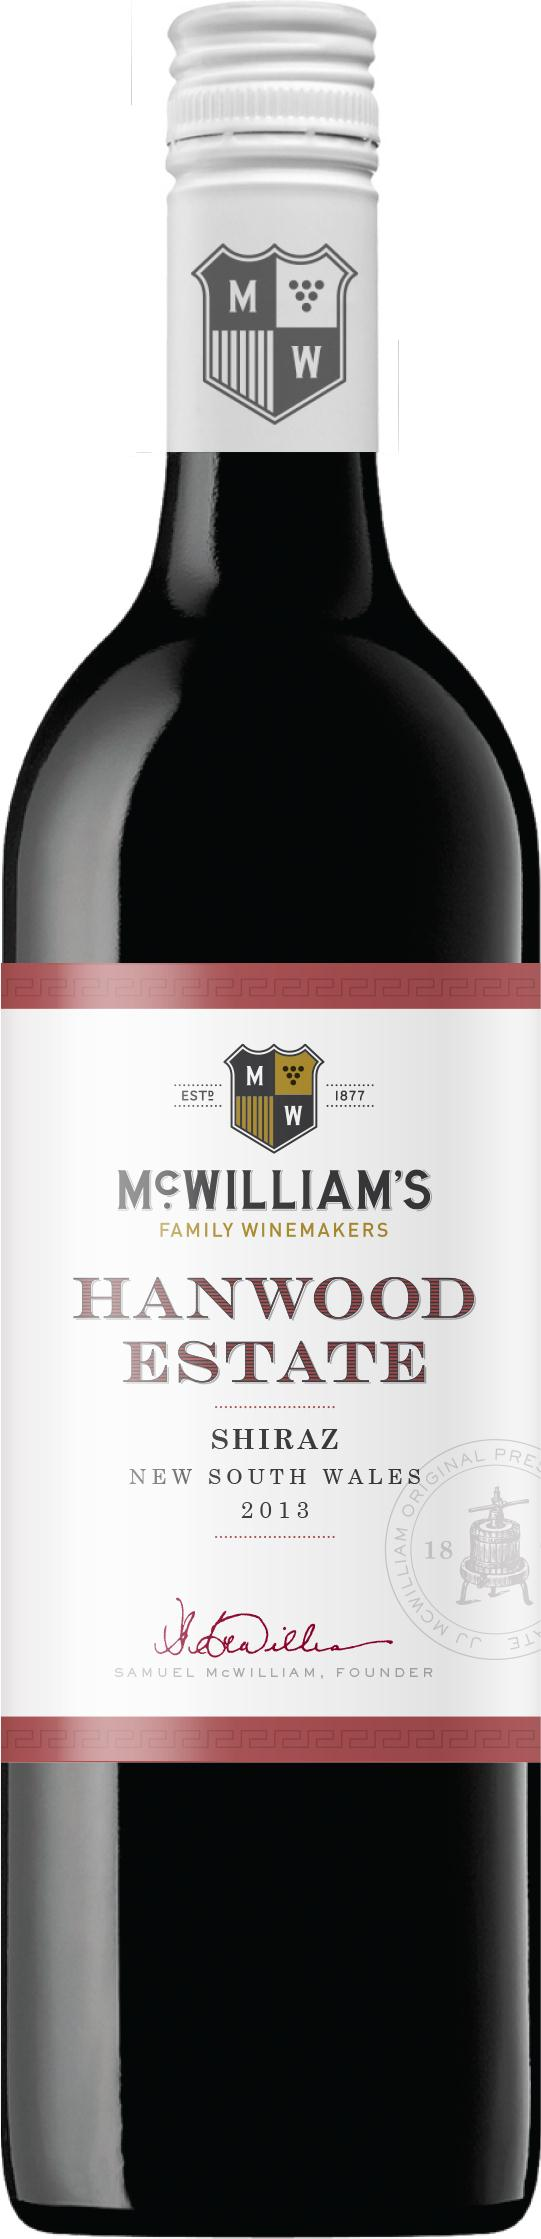 McWilliam's Shiraz